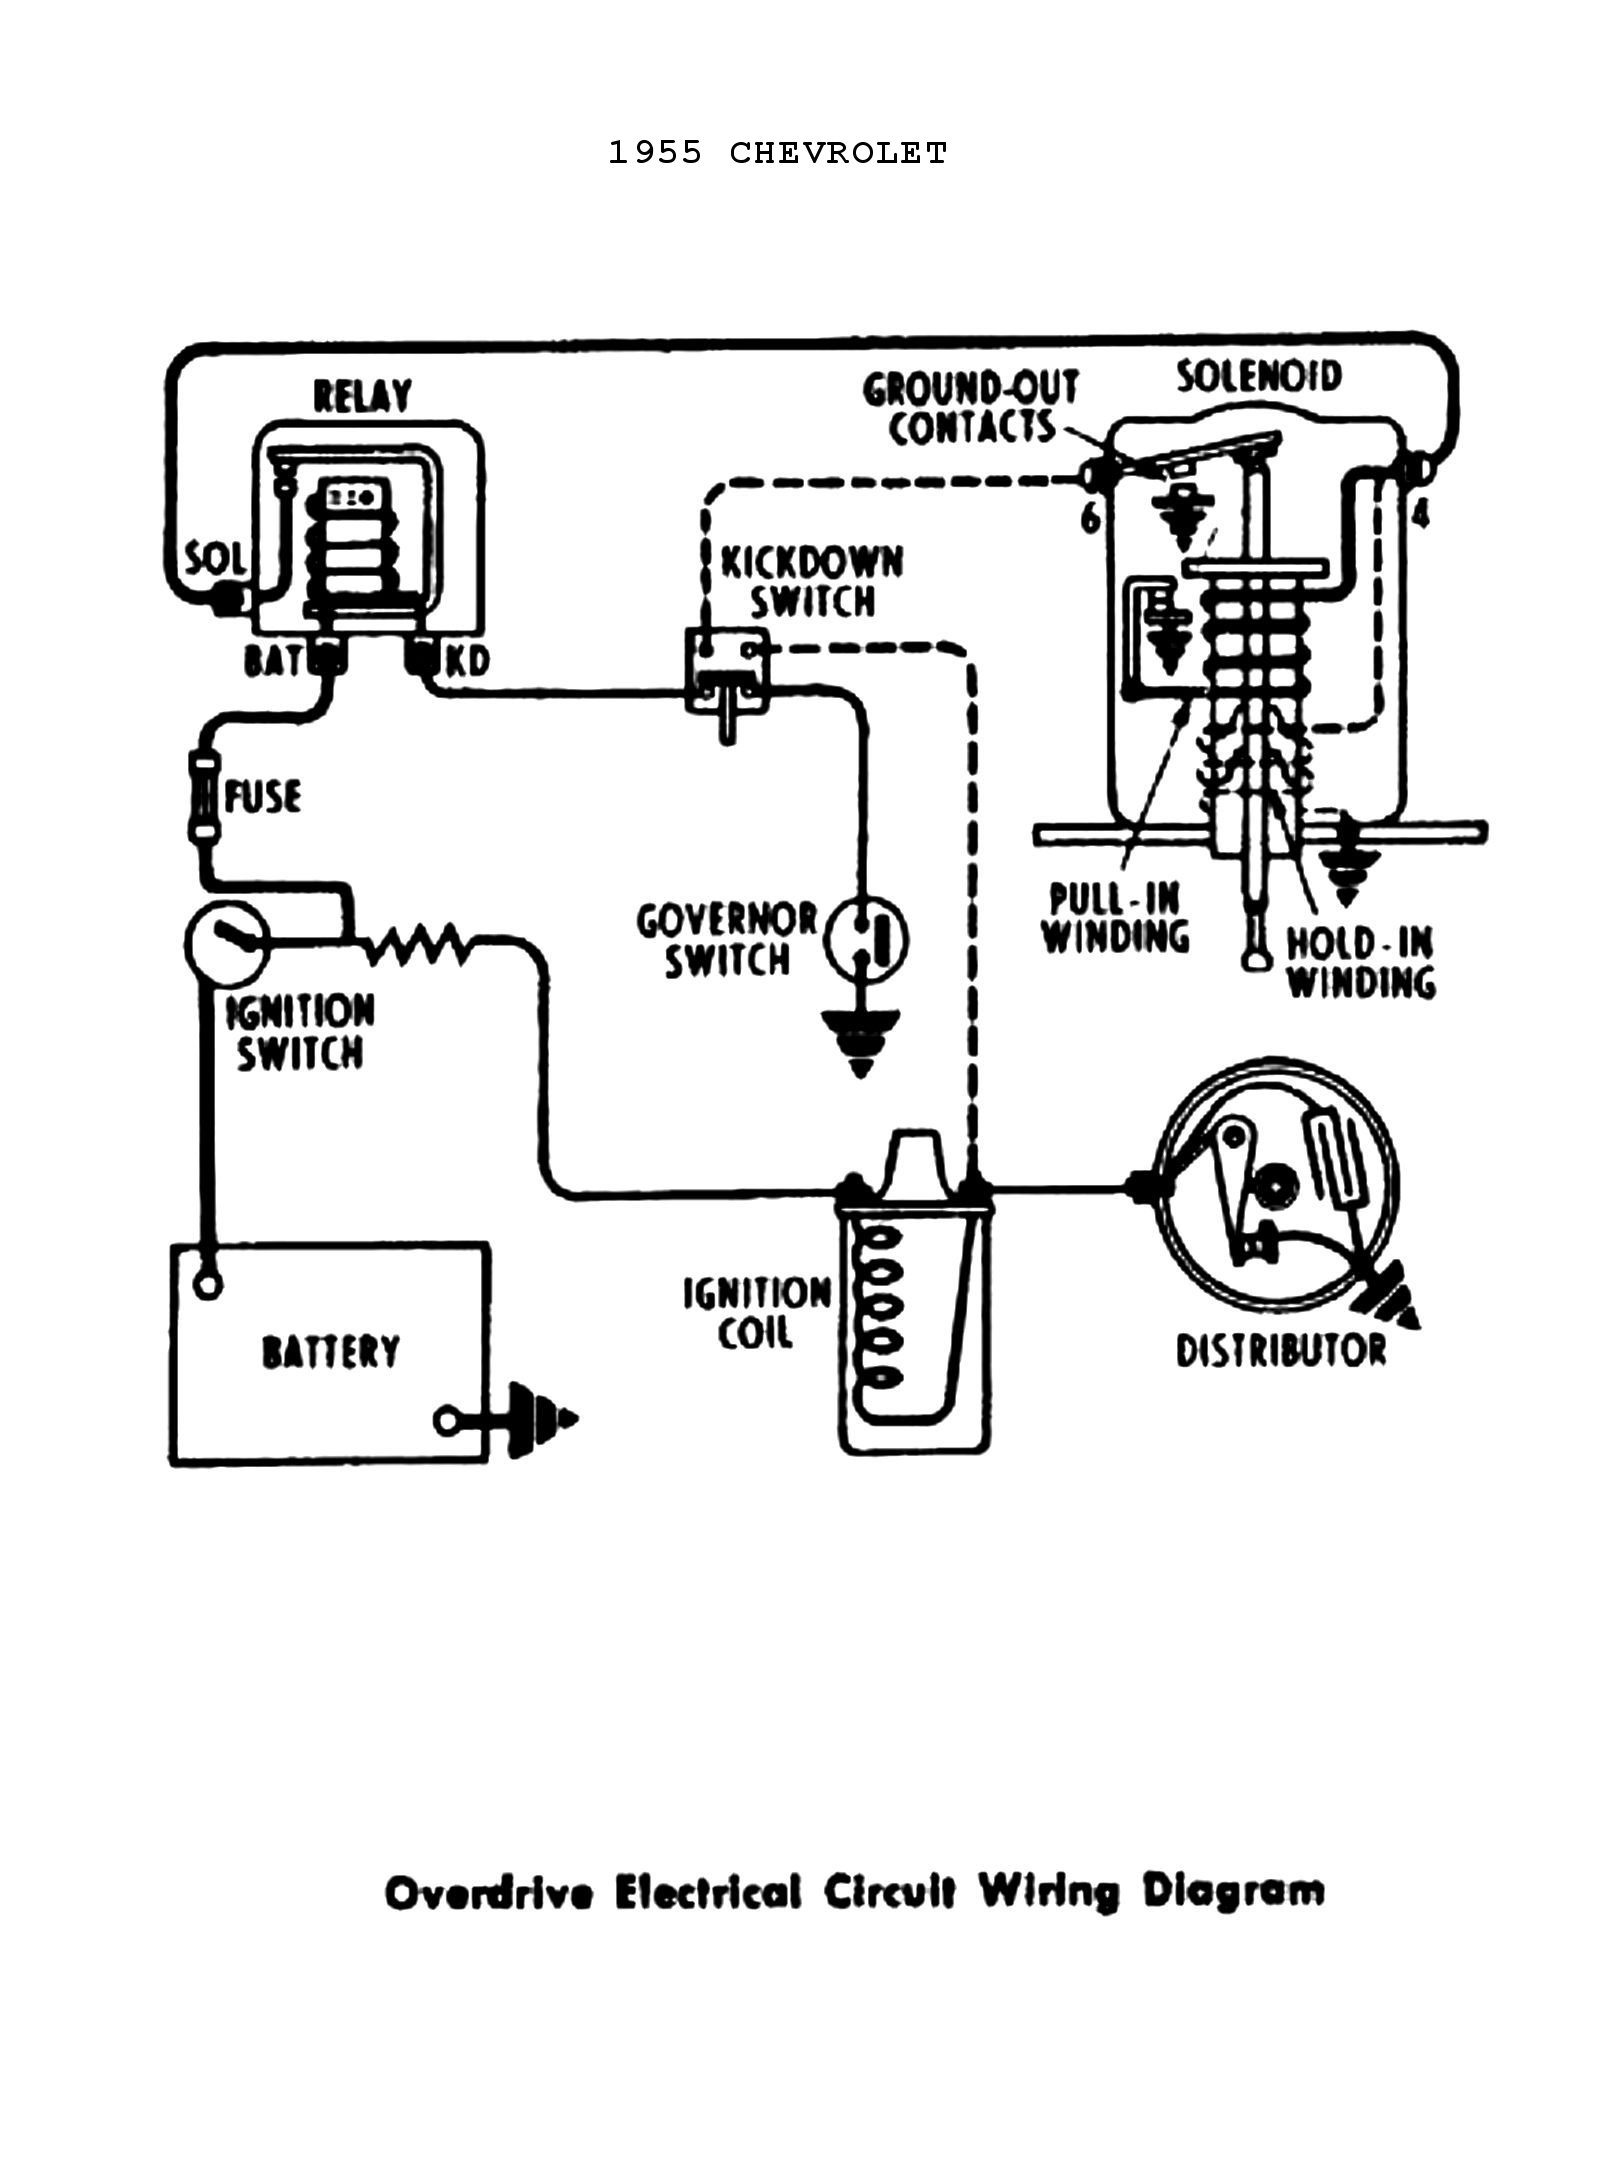 chevy wiring diagrams 1955 power windows seats · 1955 overdrive circuit